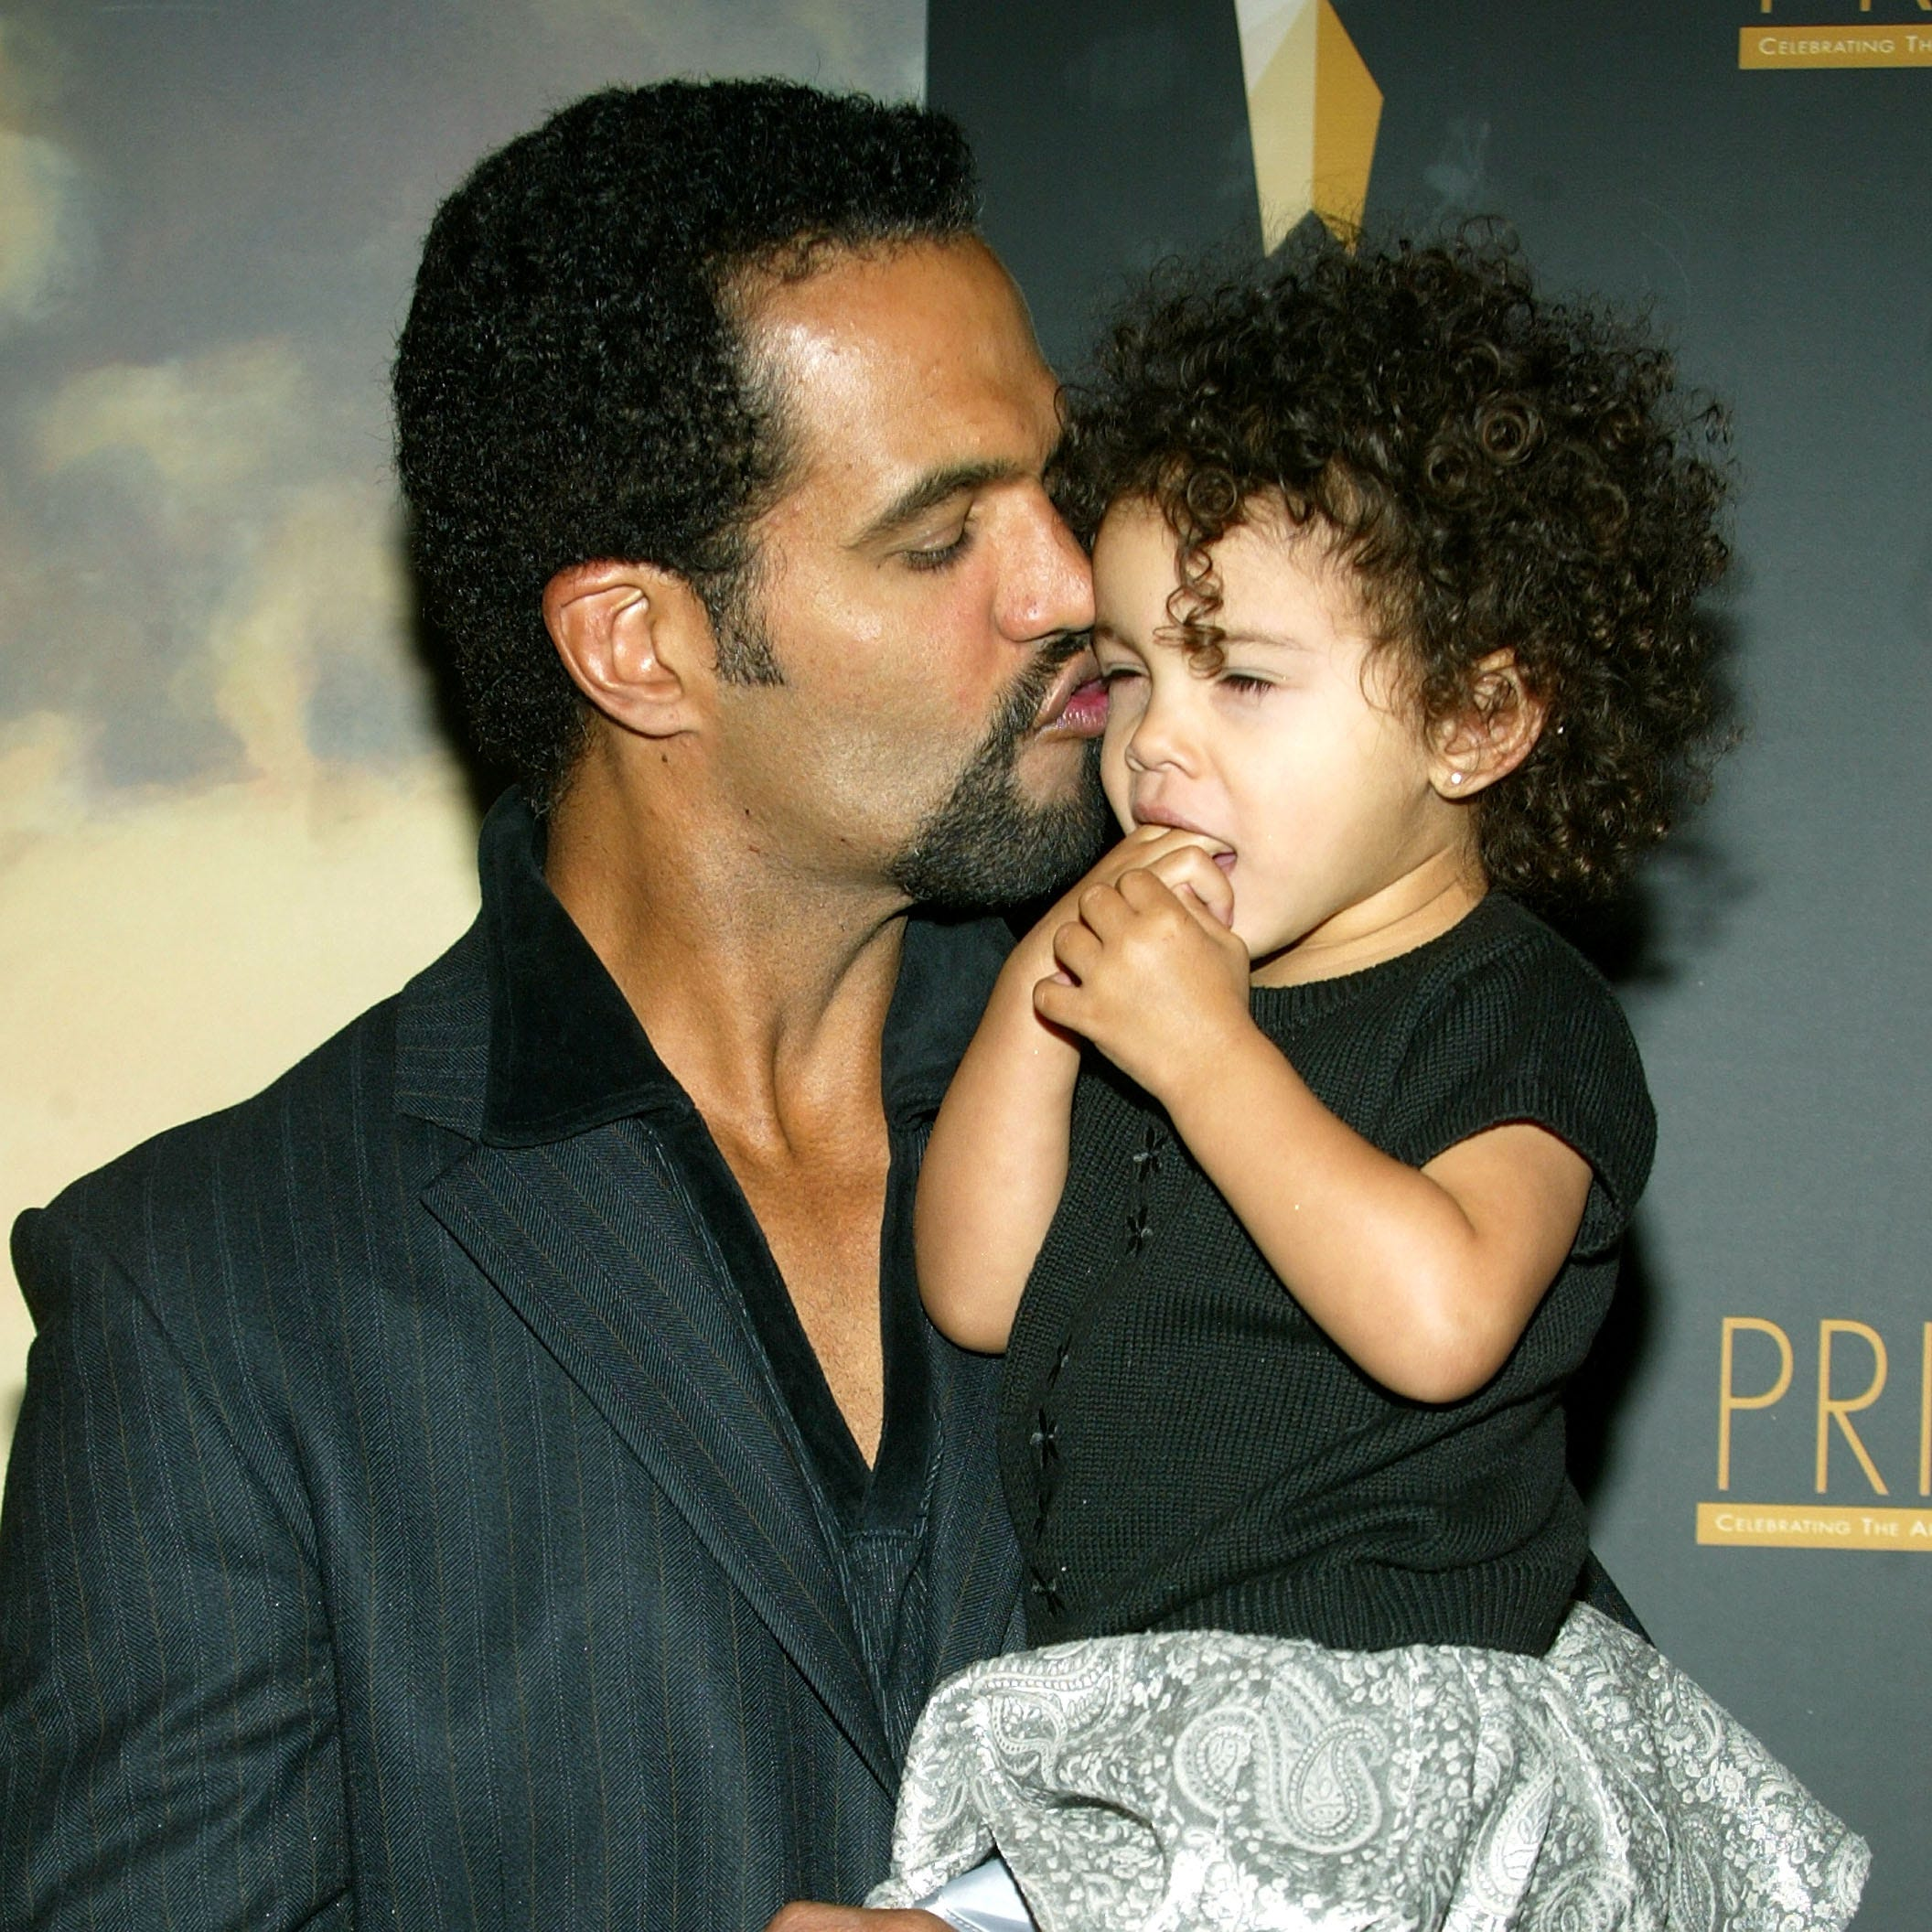 Kristoff St. John poses with daughter Lola as they arrive at the 9th Annual PRISM Awards, April 28, 2005 in Beverly Hills, Calif.